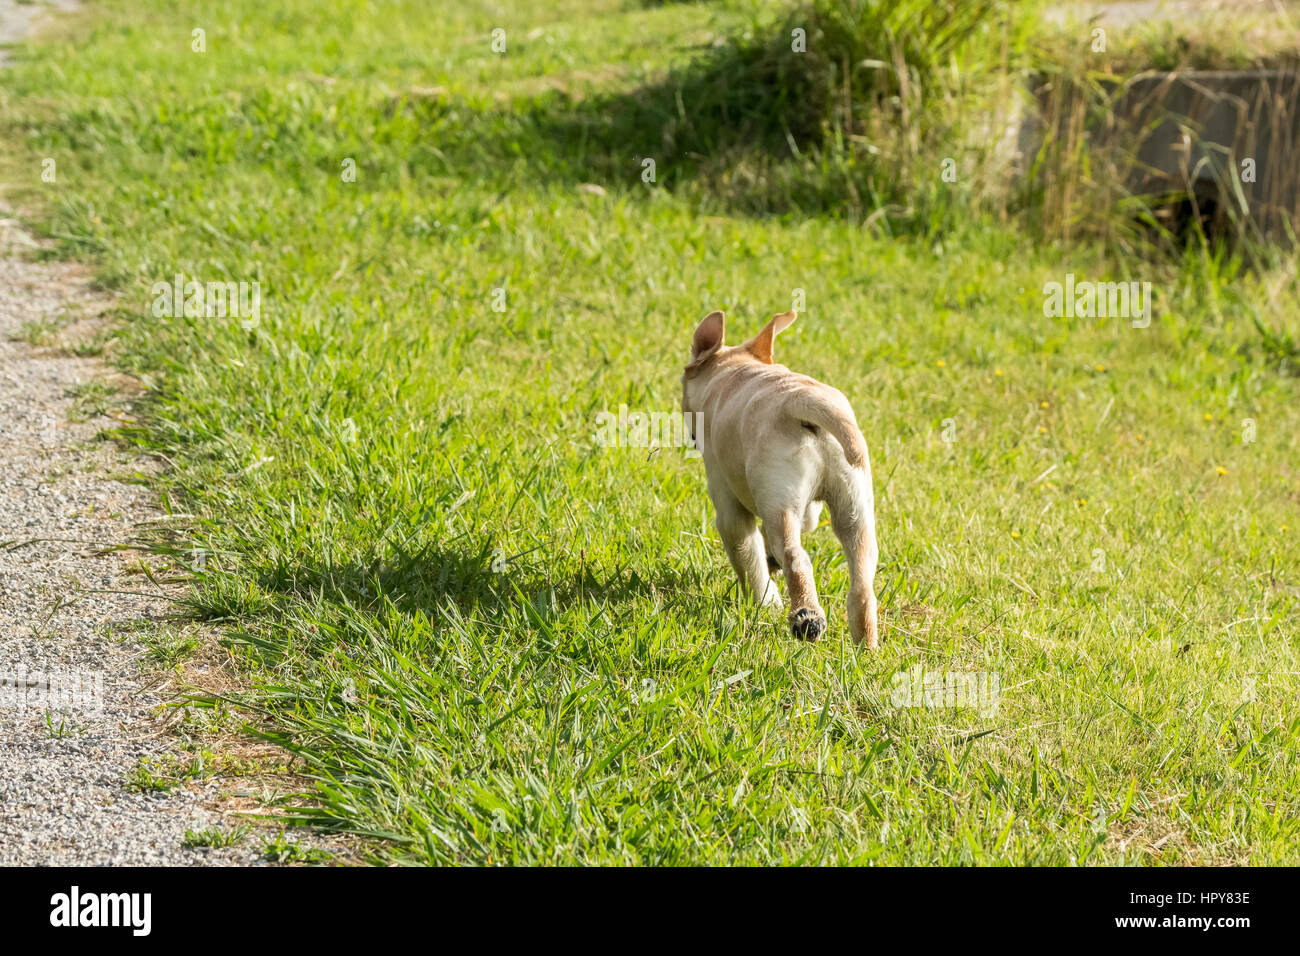 A young Labrador Retriever puppy running away through a park with his ears flying up. - Stock Image